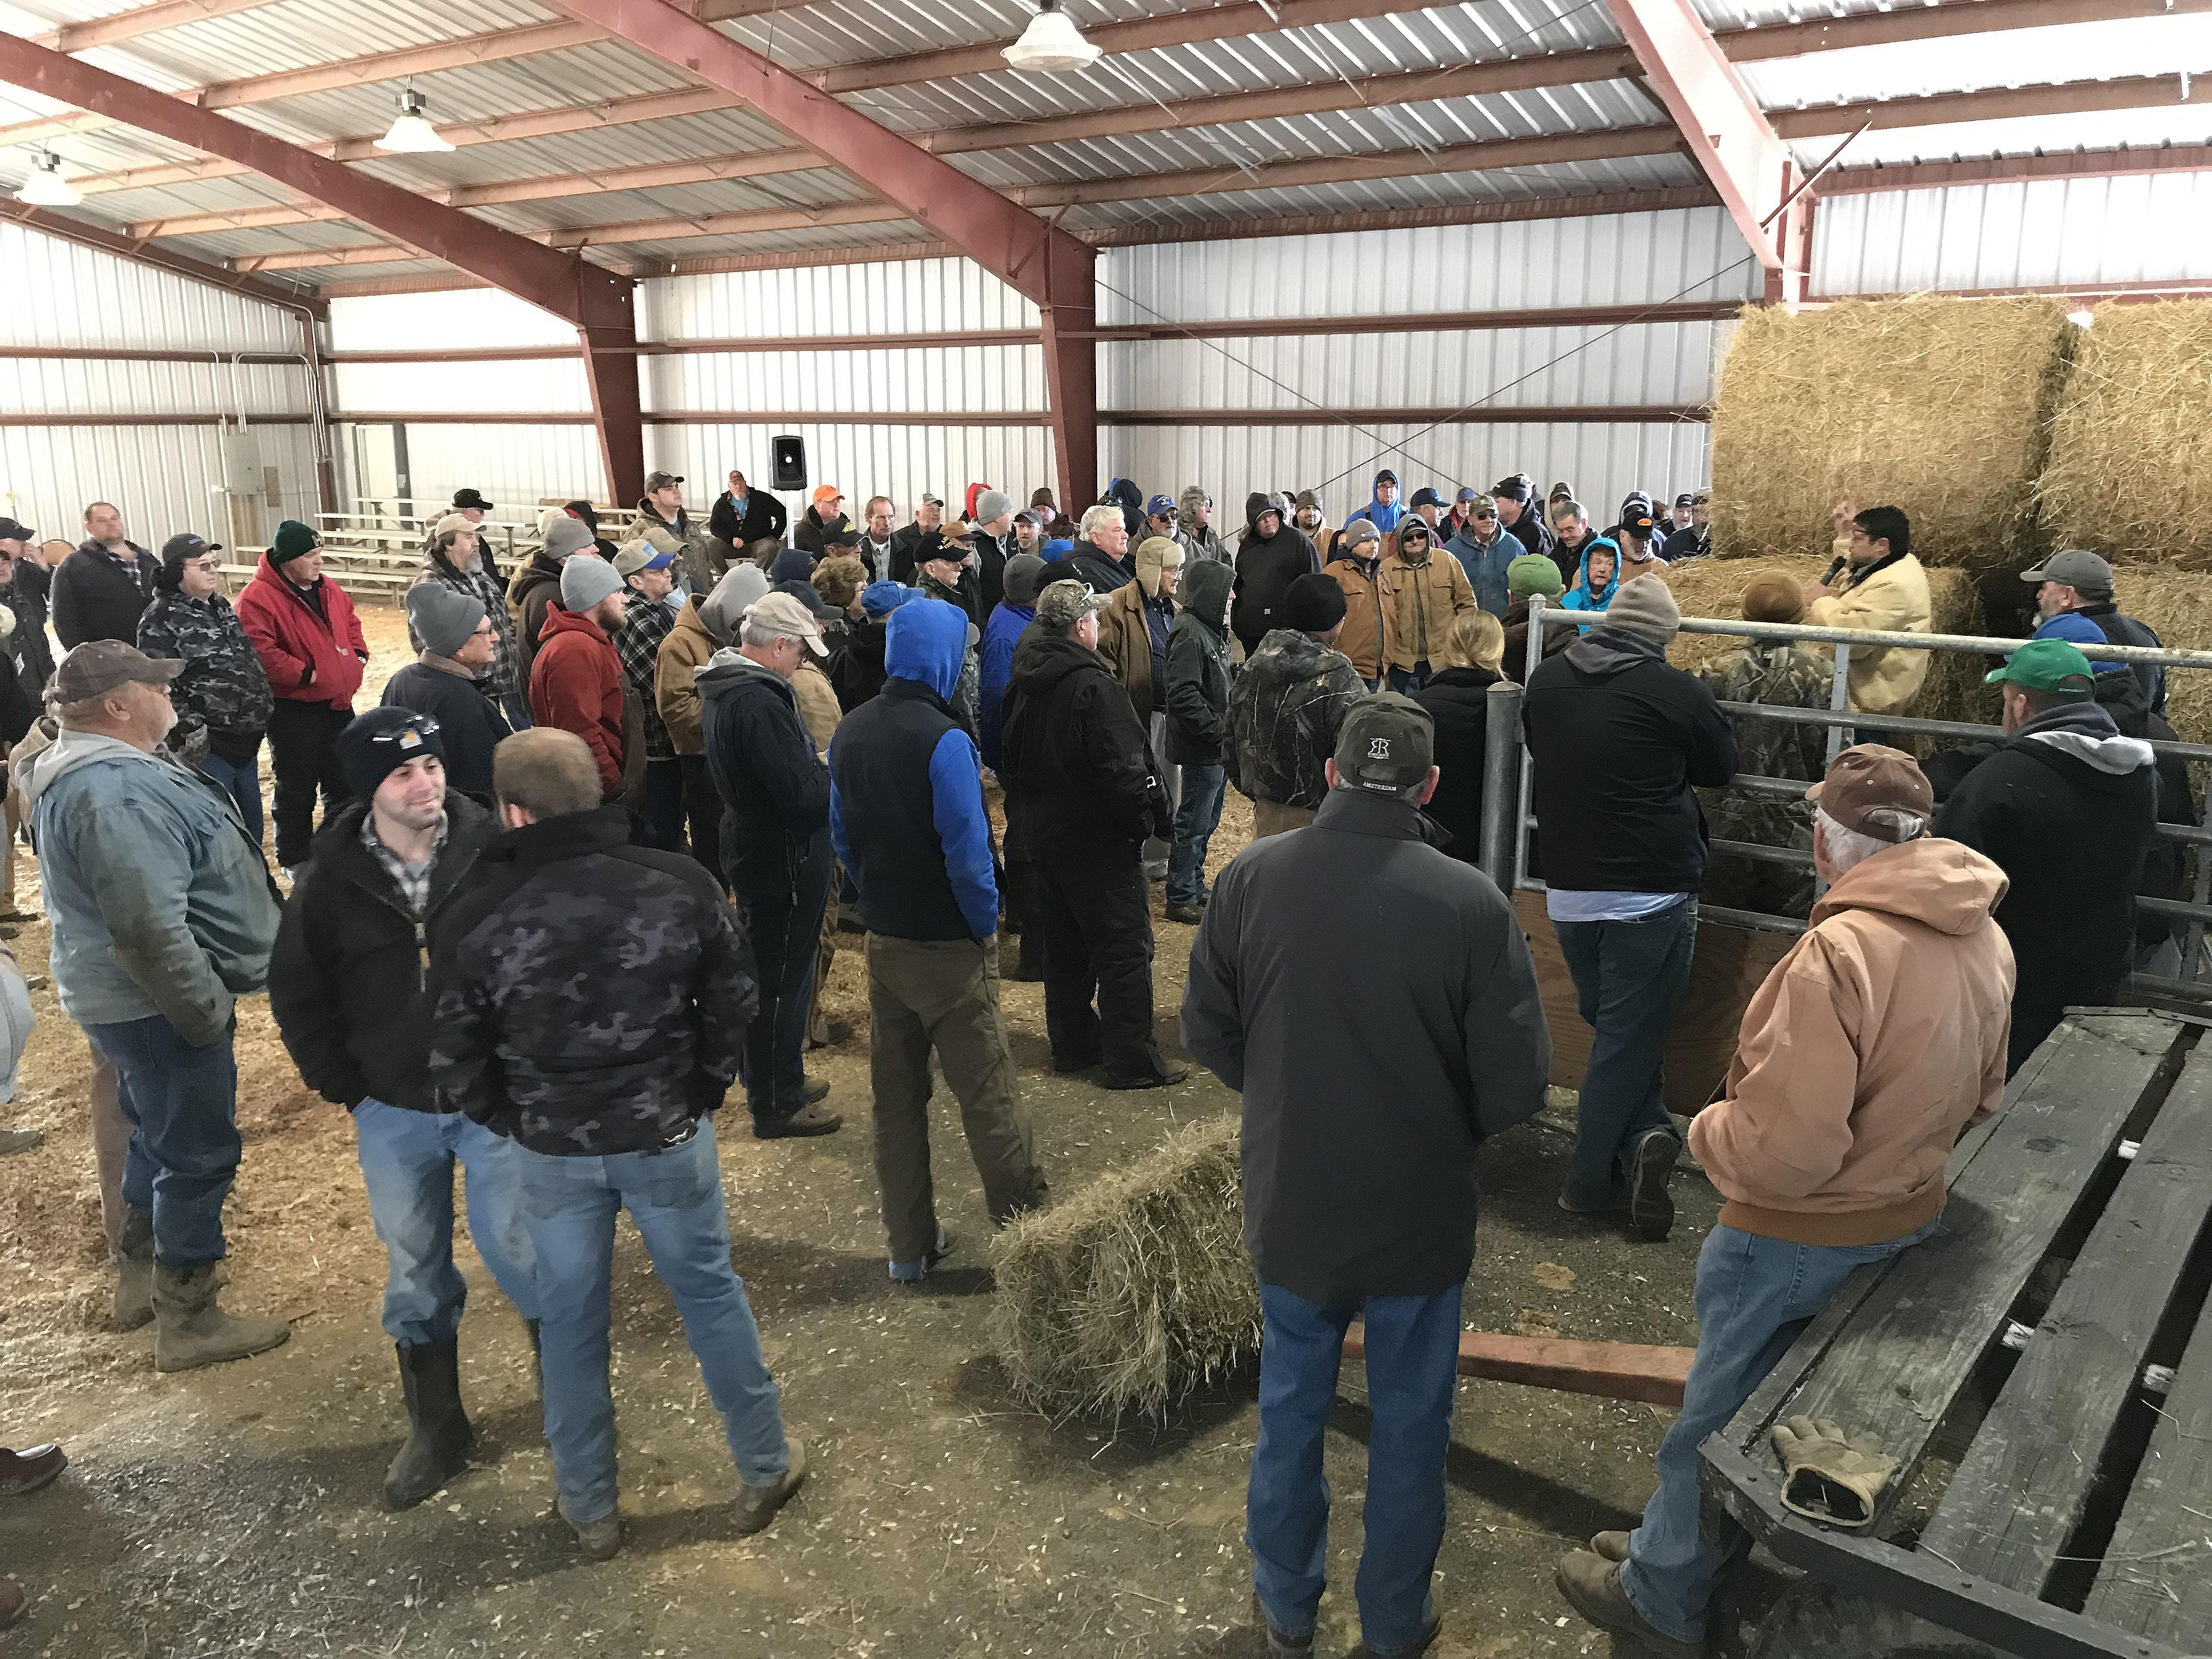 Producers bid on hay at the Tri-County Hay and Straw Auction in Metcalfe County. Photo by Kevin Lyons, Monroe County agriculture and natural resources extension agent.